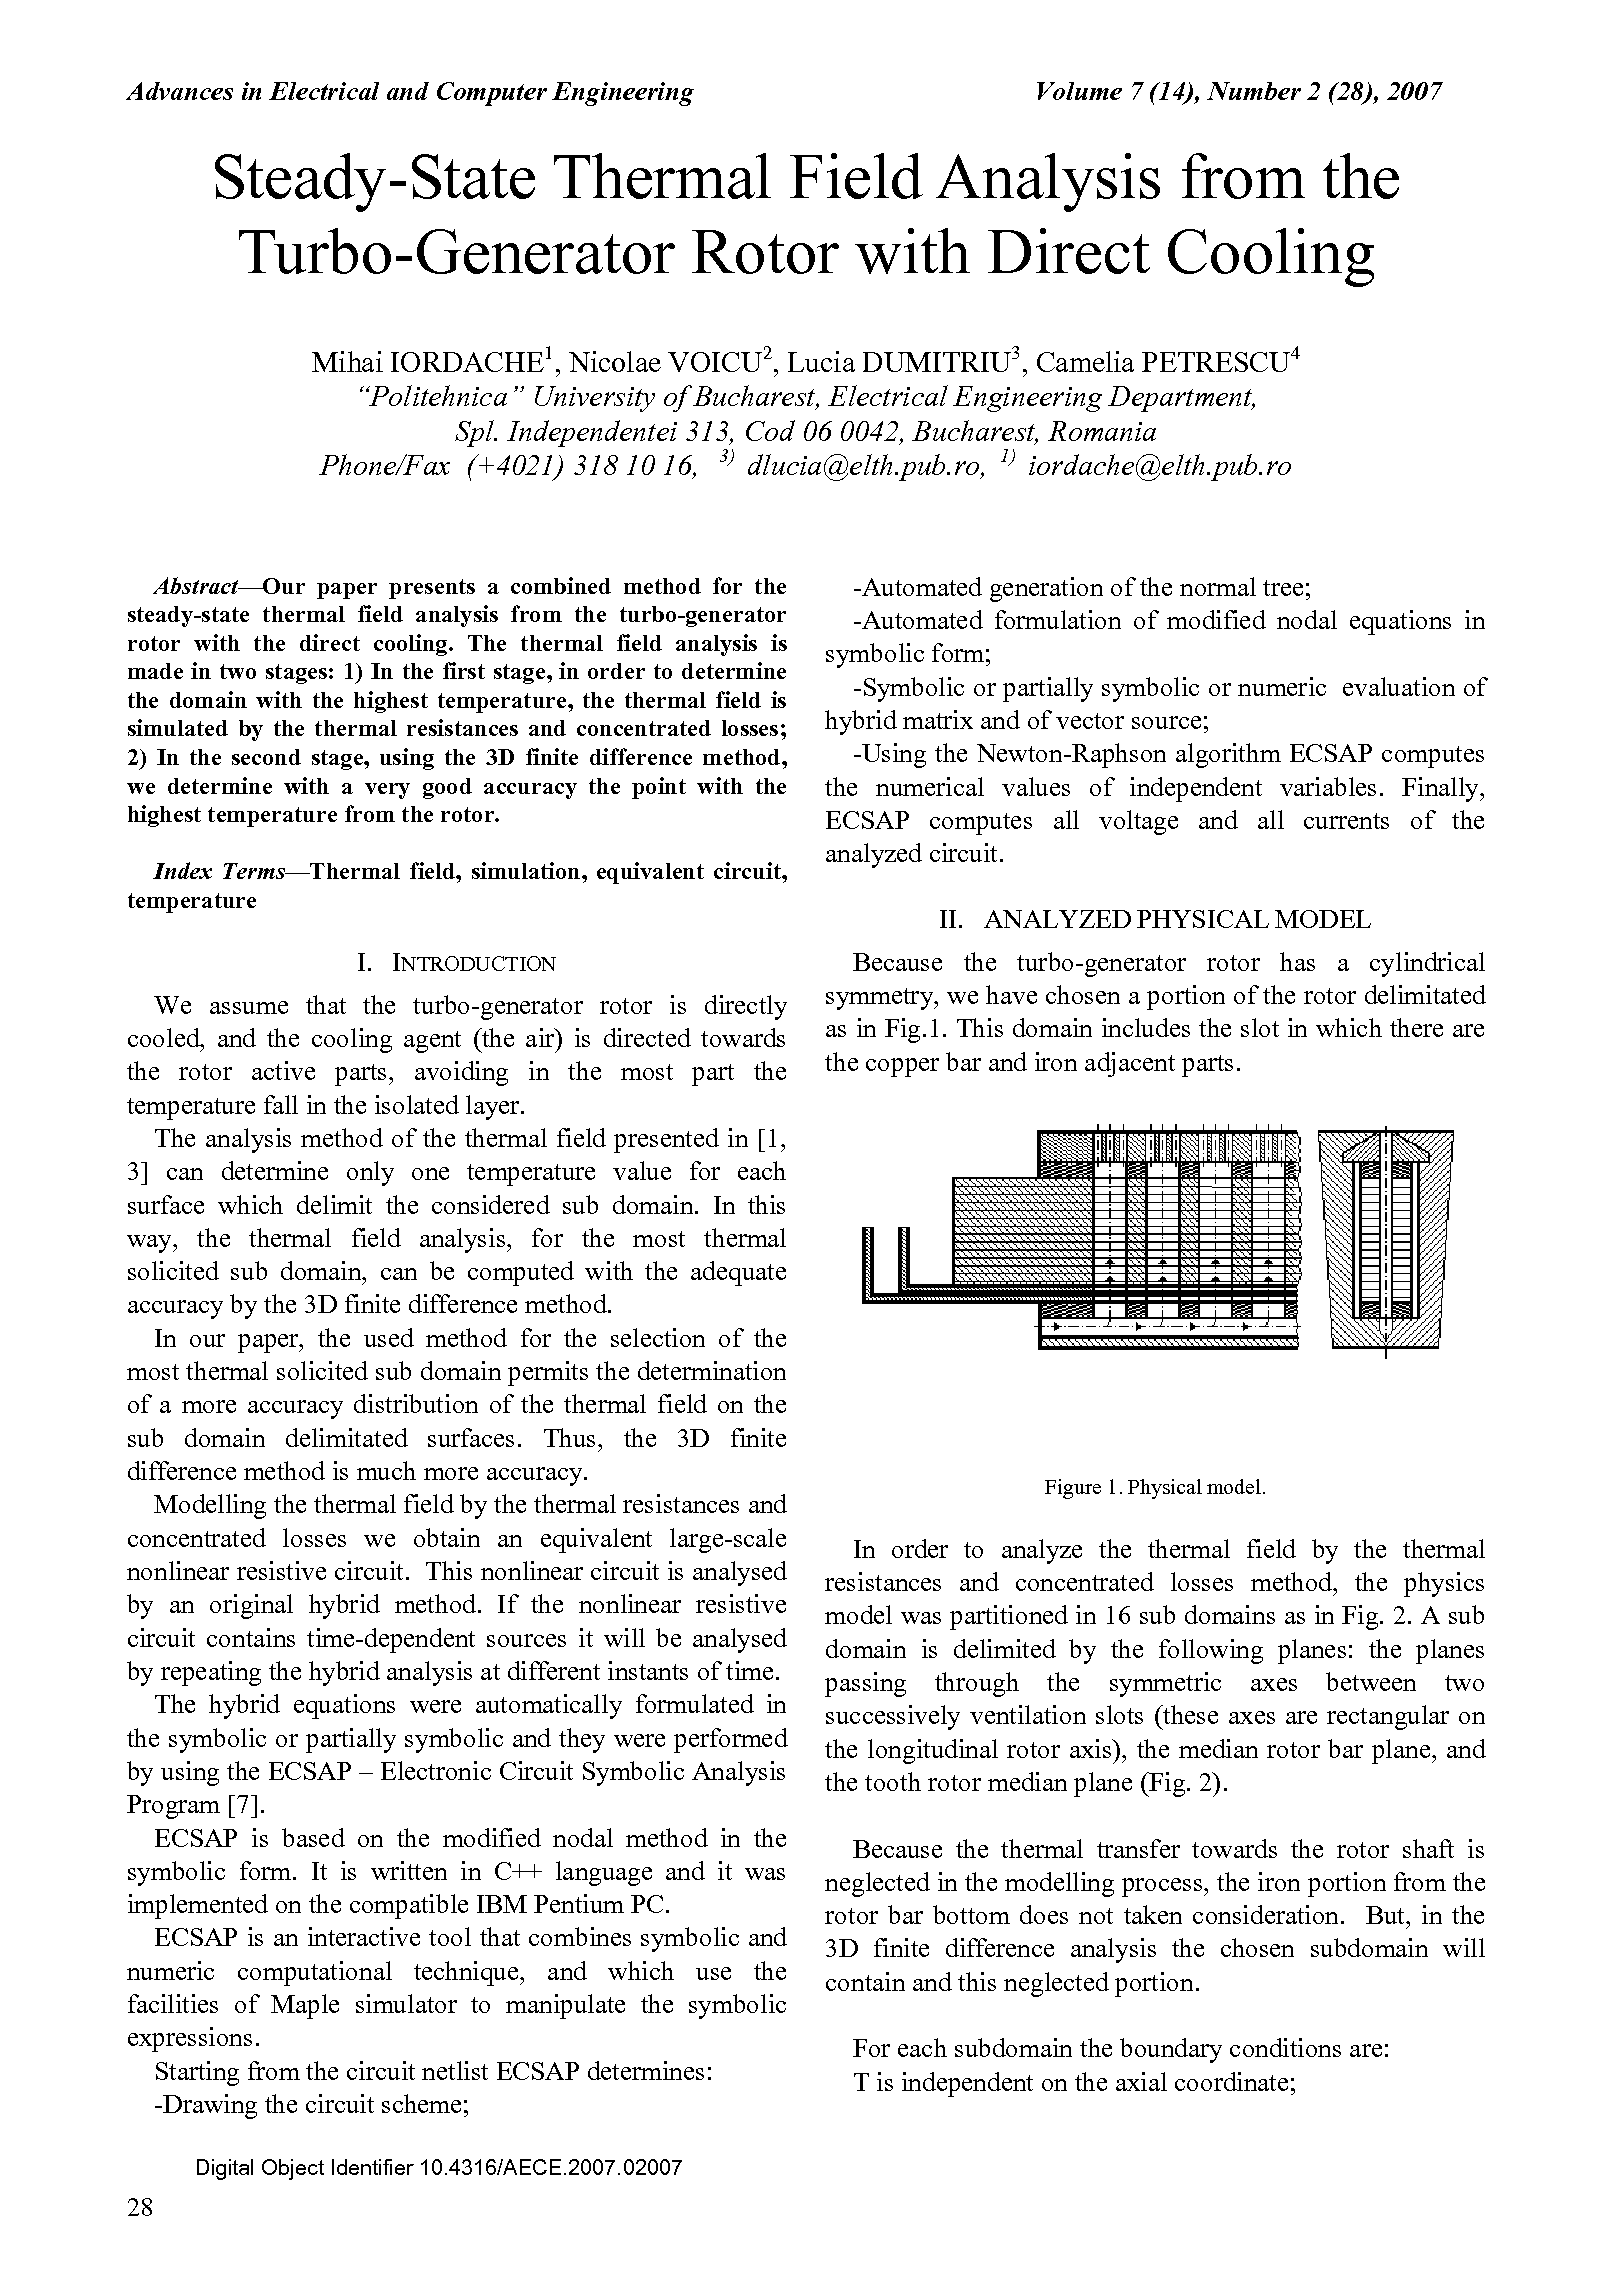 PDF Quickview for paper with DOI:10.4316/AECE.2007.02007